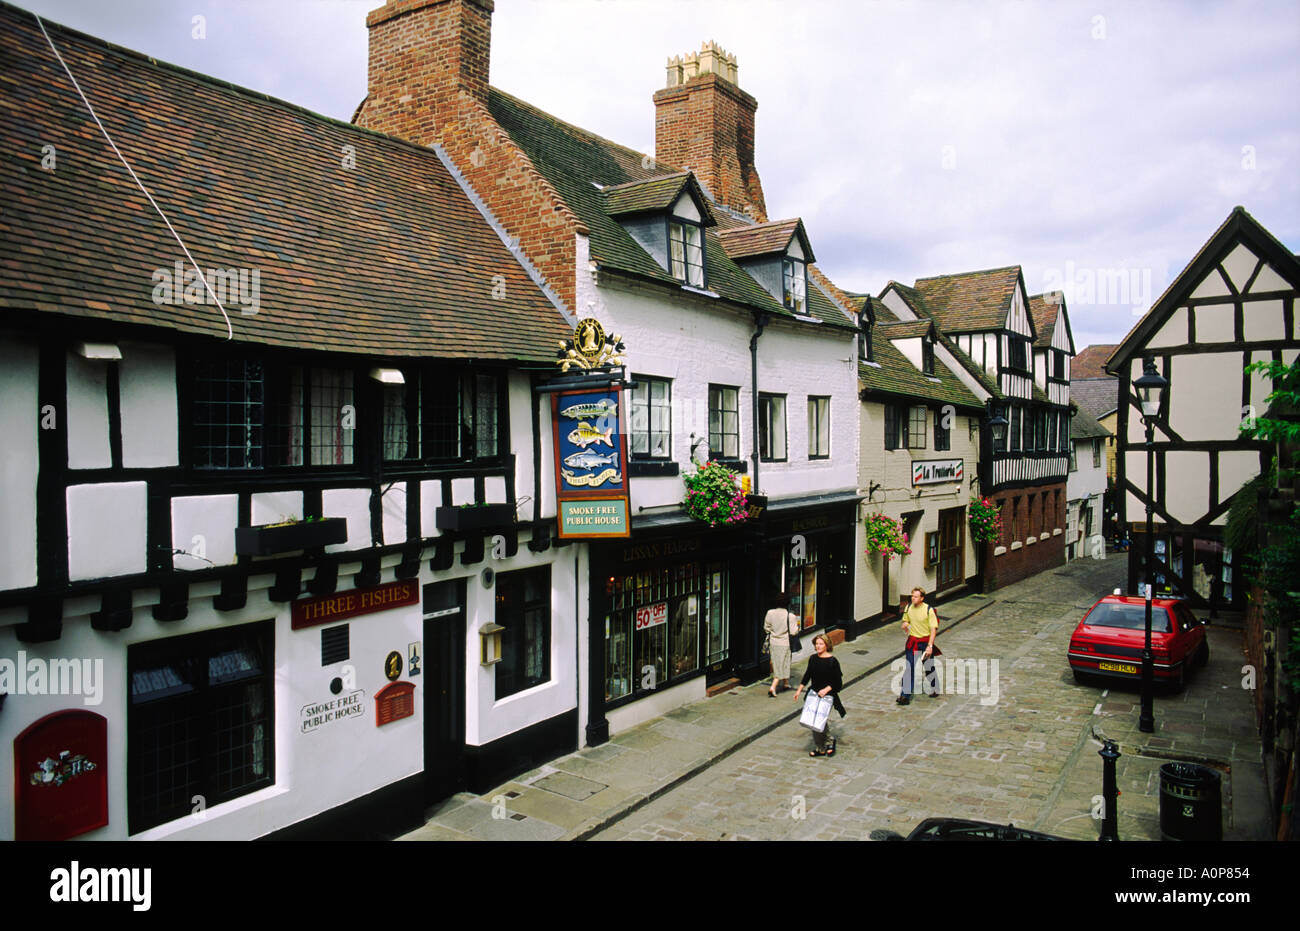 Tudor Period Houses In Fish Street In The Market Town Of